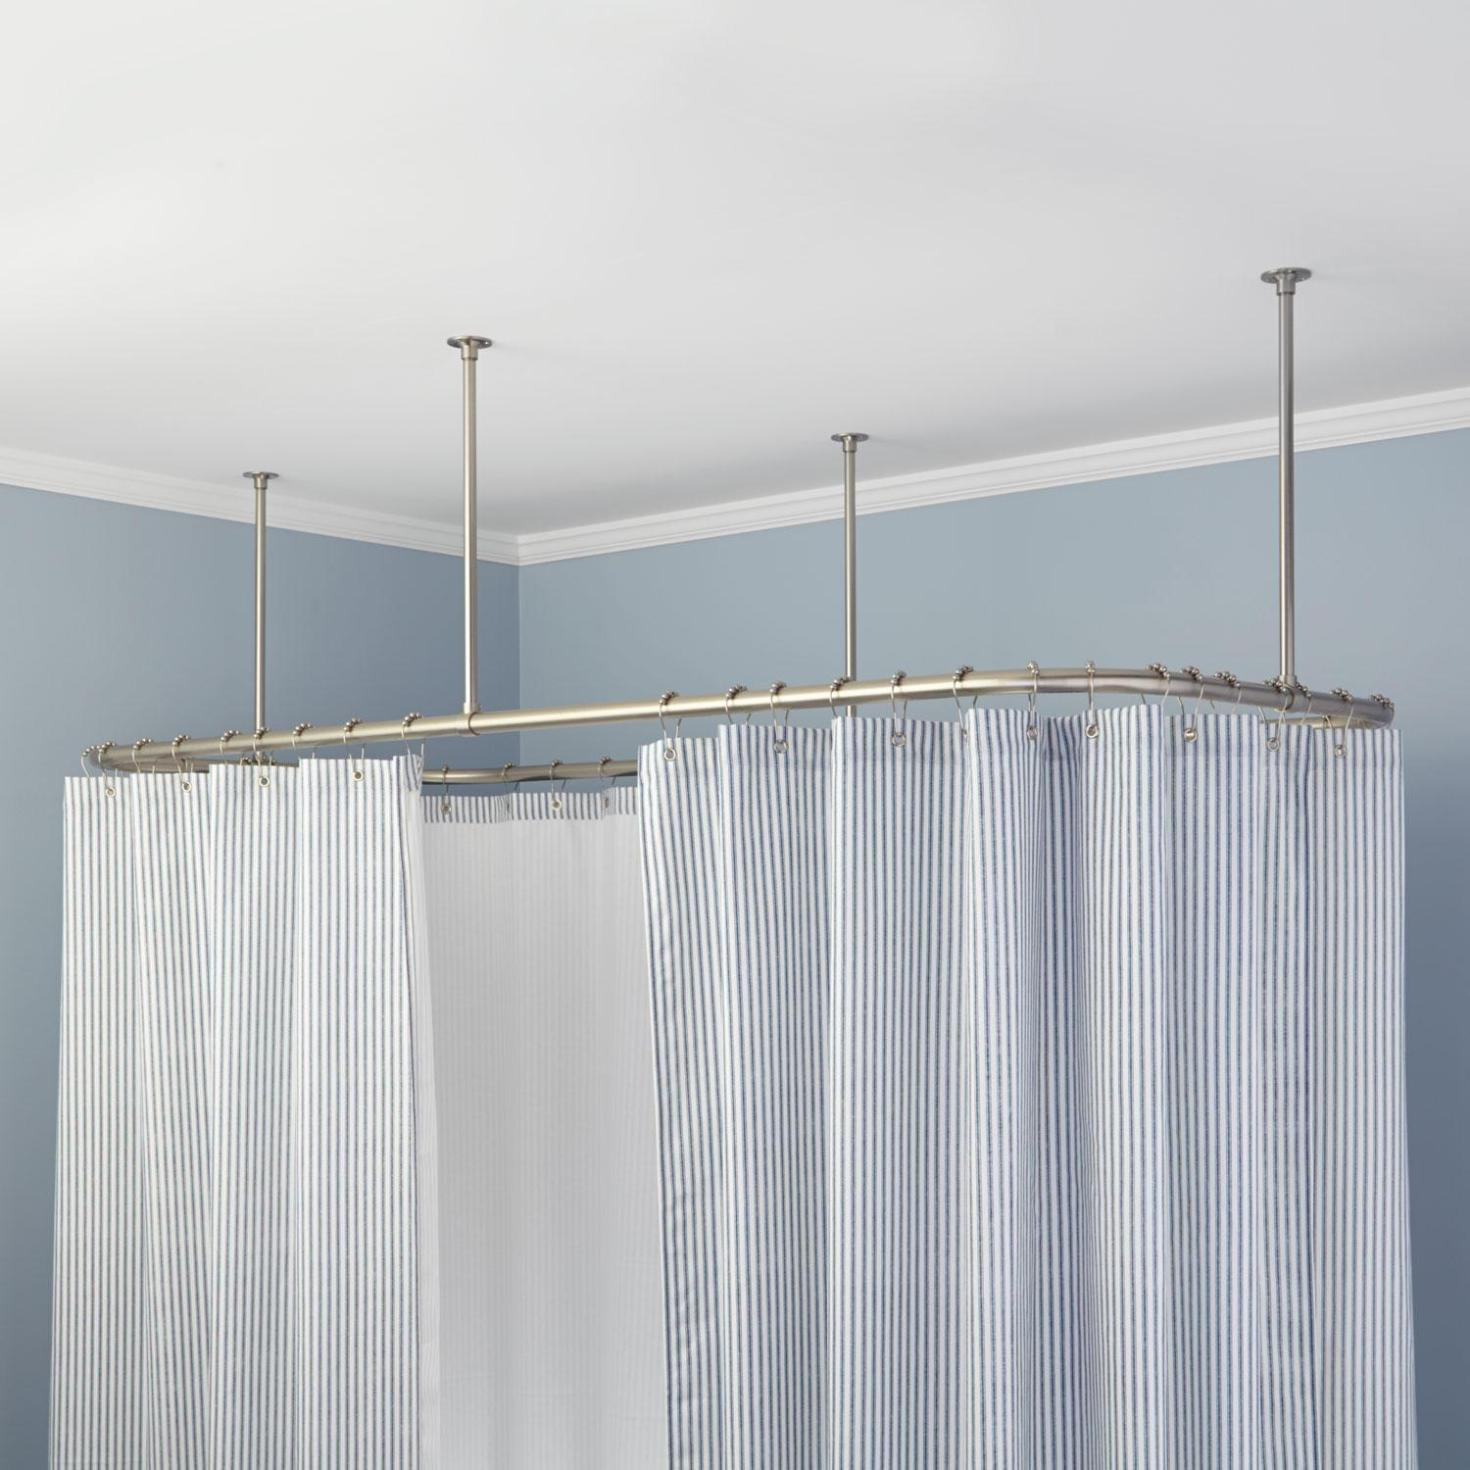 Image of: Double Tension Shower Curtain Rod